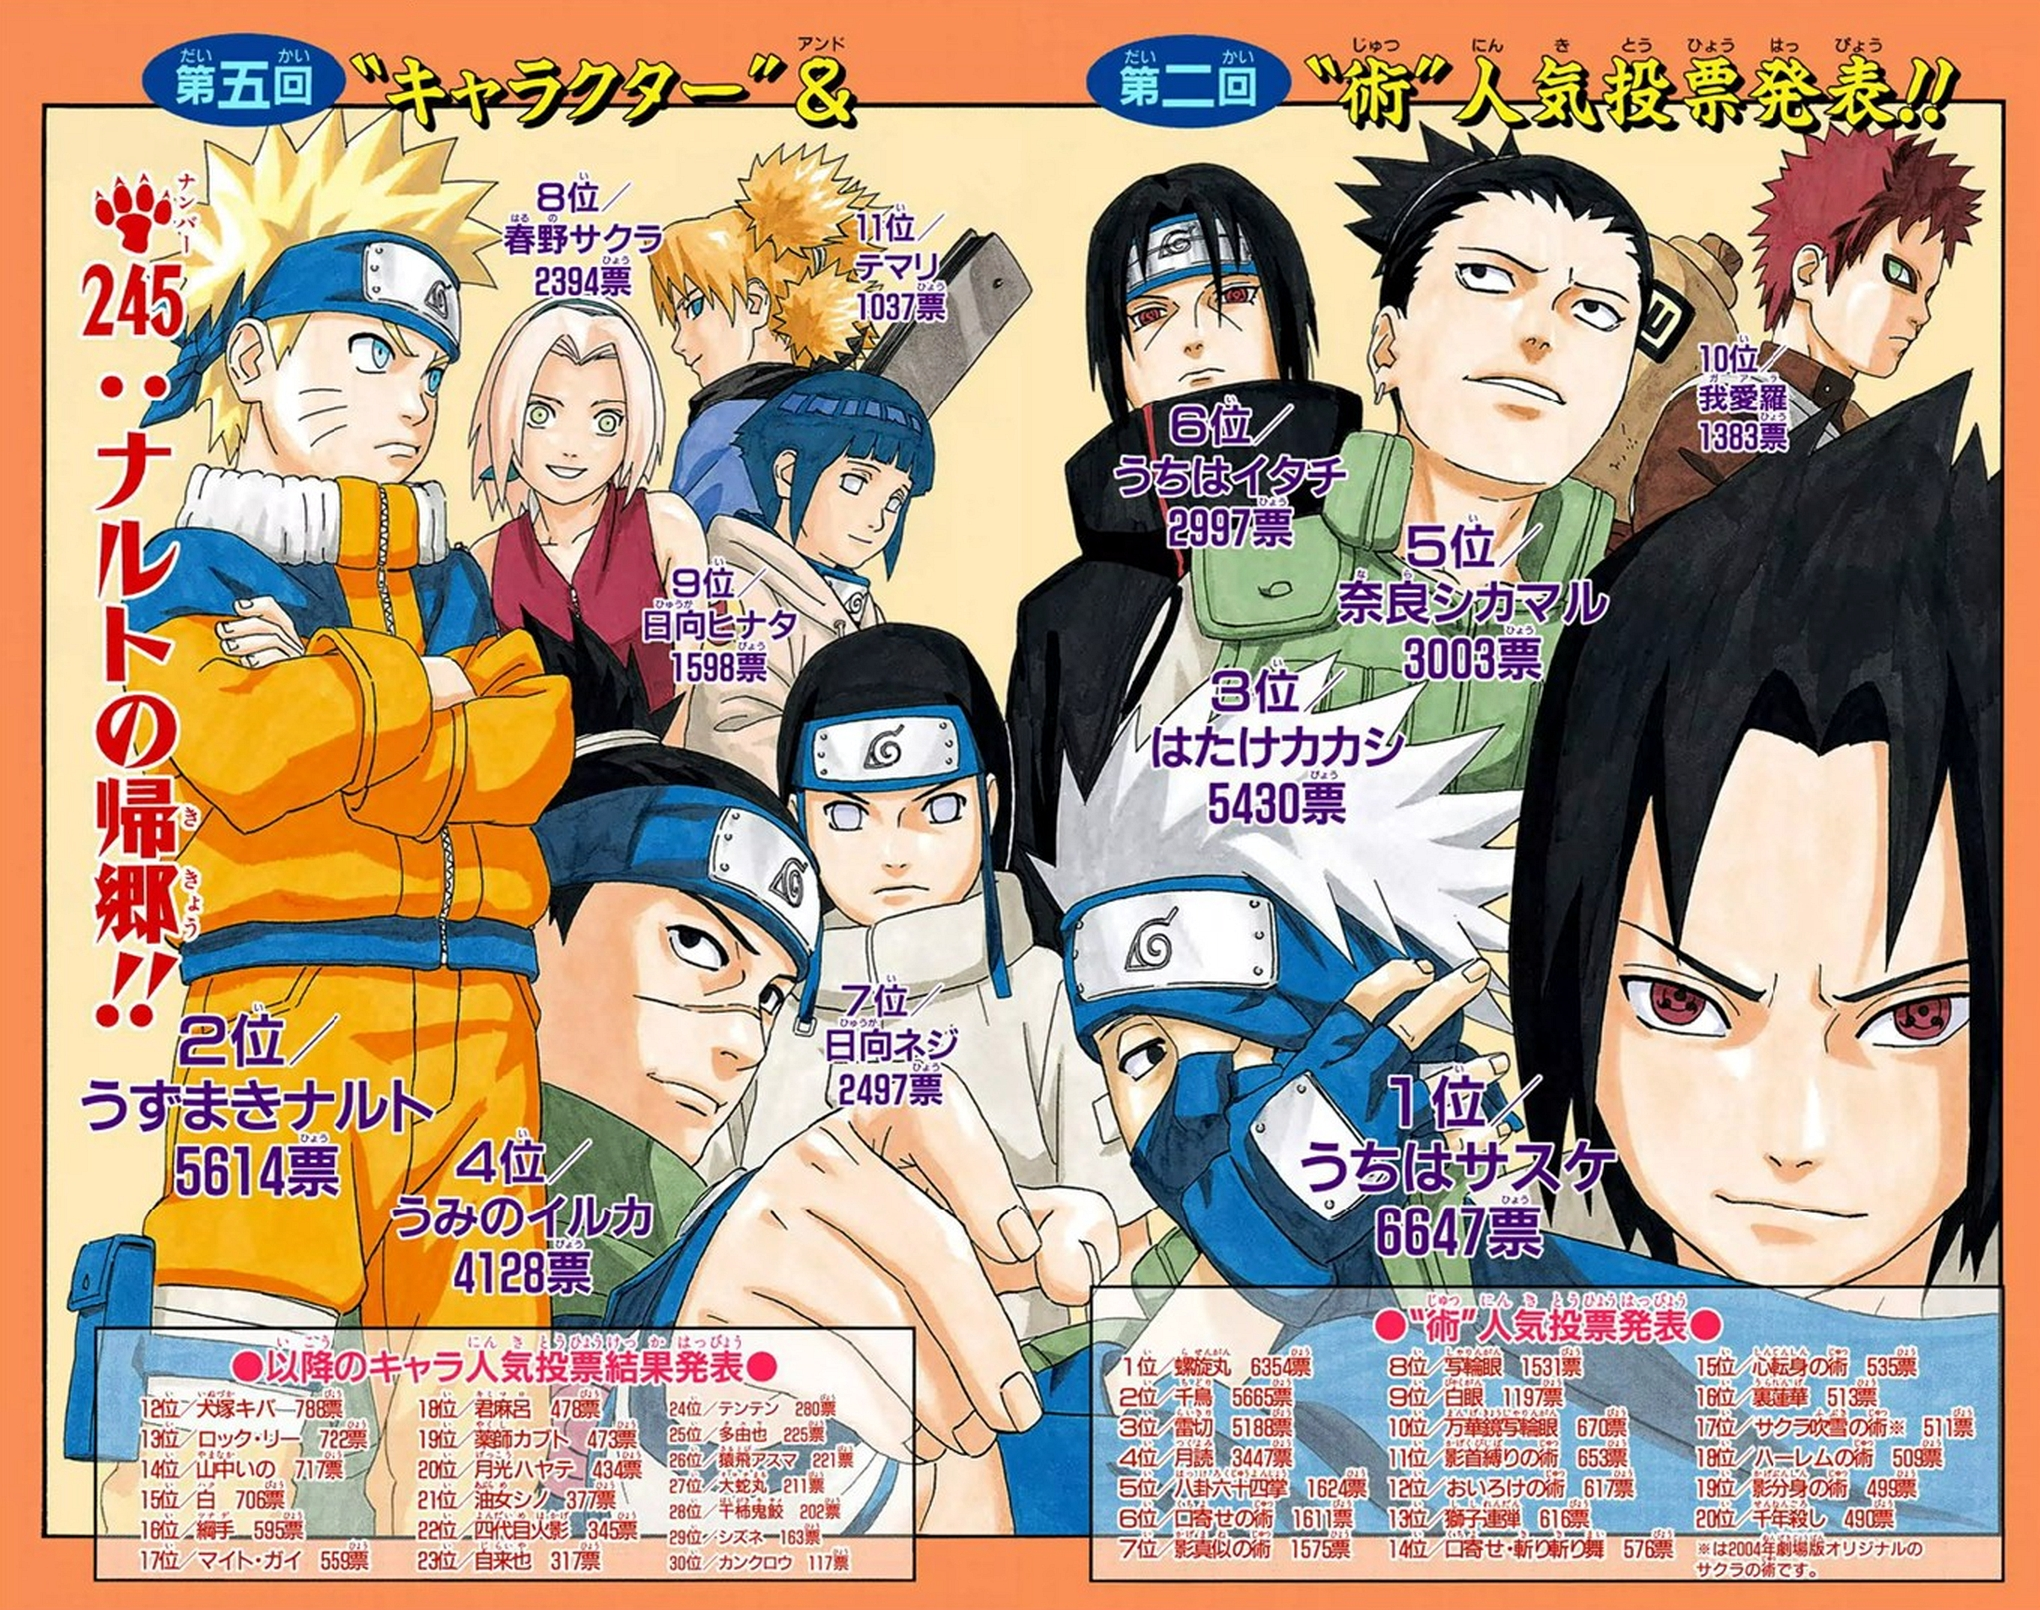 Anime Characters Popularity Poll : Sasuke doesn t deserve his popularity